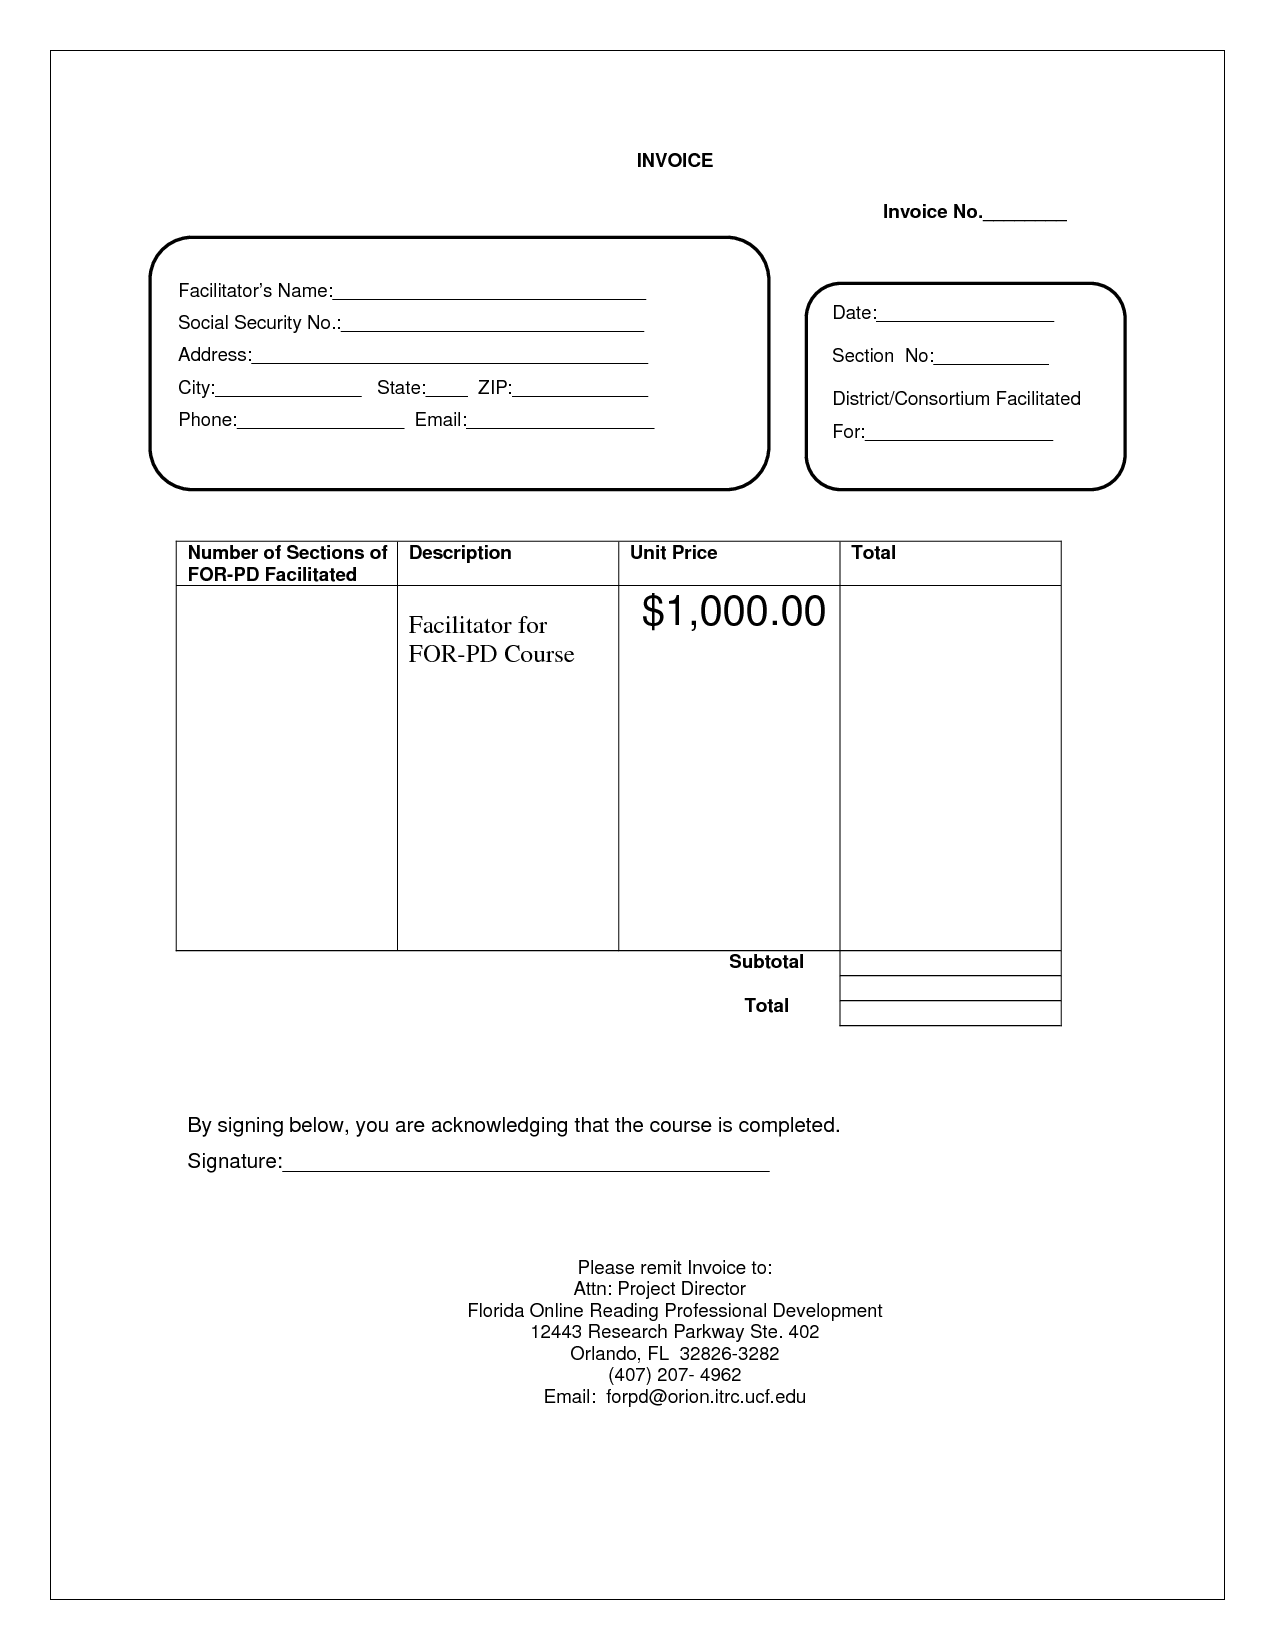 Blank Invoice Document loan agreement word template, service